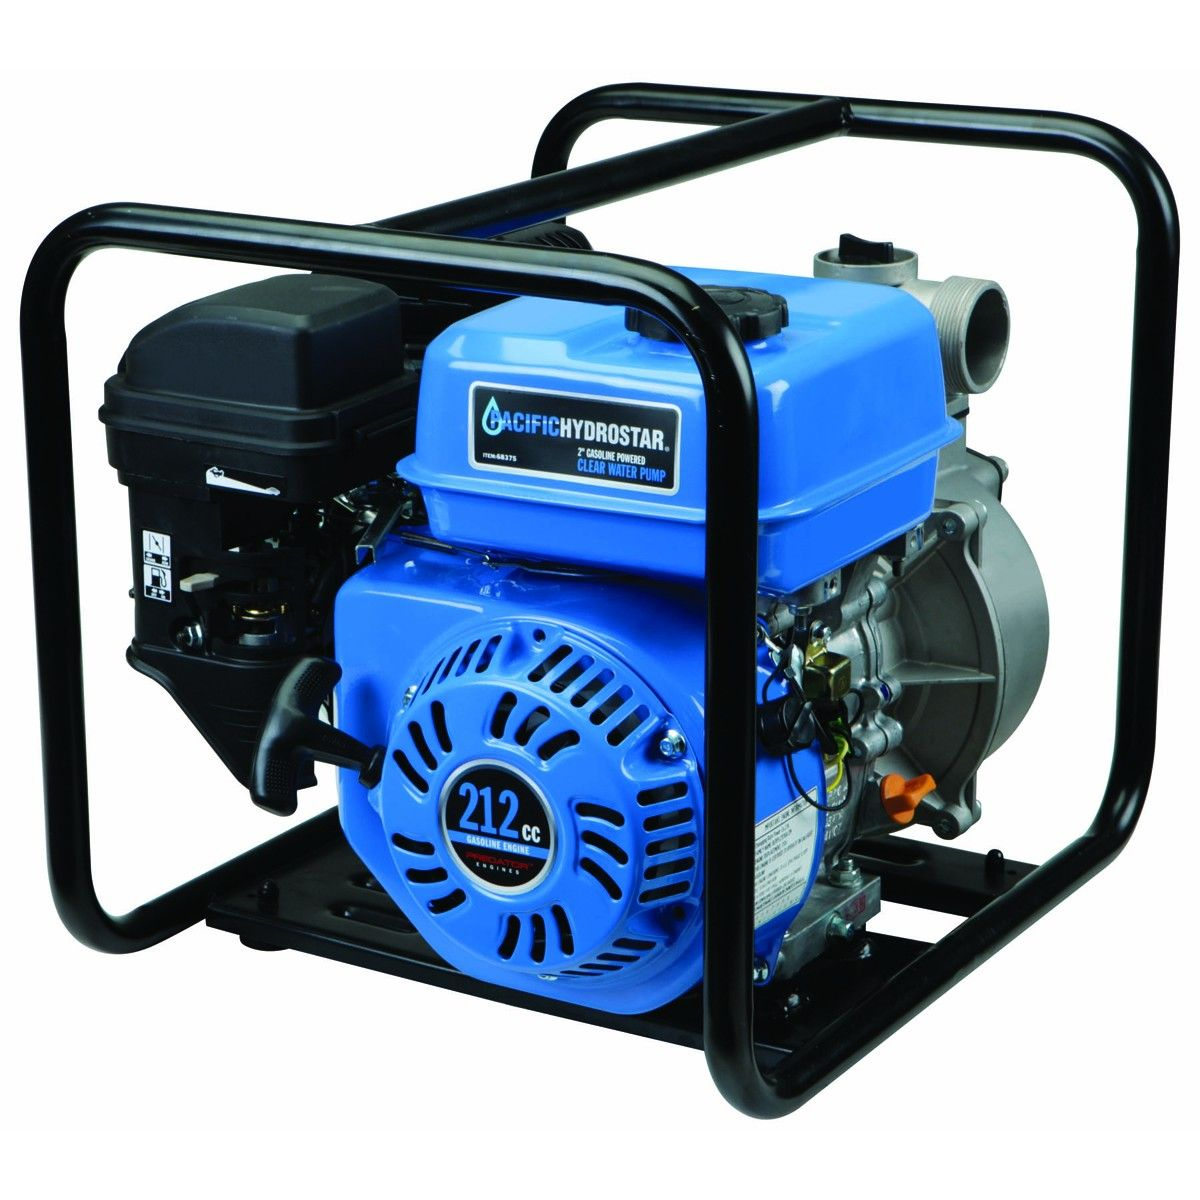 2 clear water pump with 212cc gasengine harbor freight pinterest 2 clear water pump with 212cc gasengine ccuart Image collections